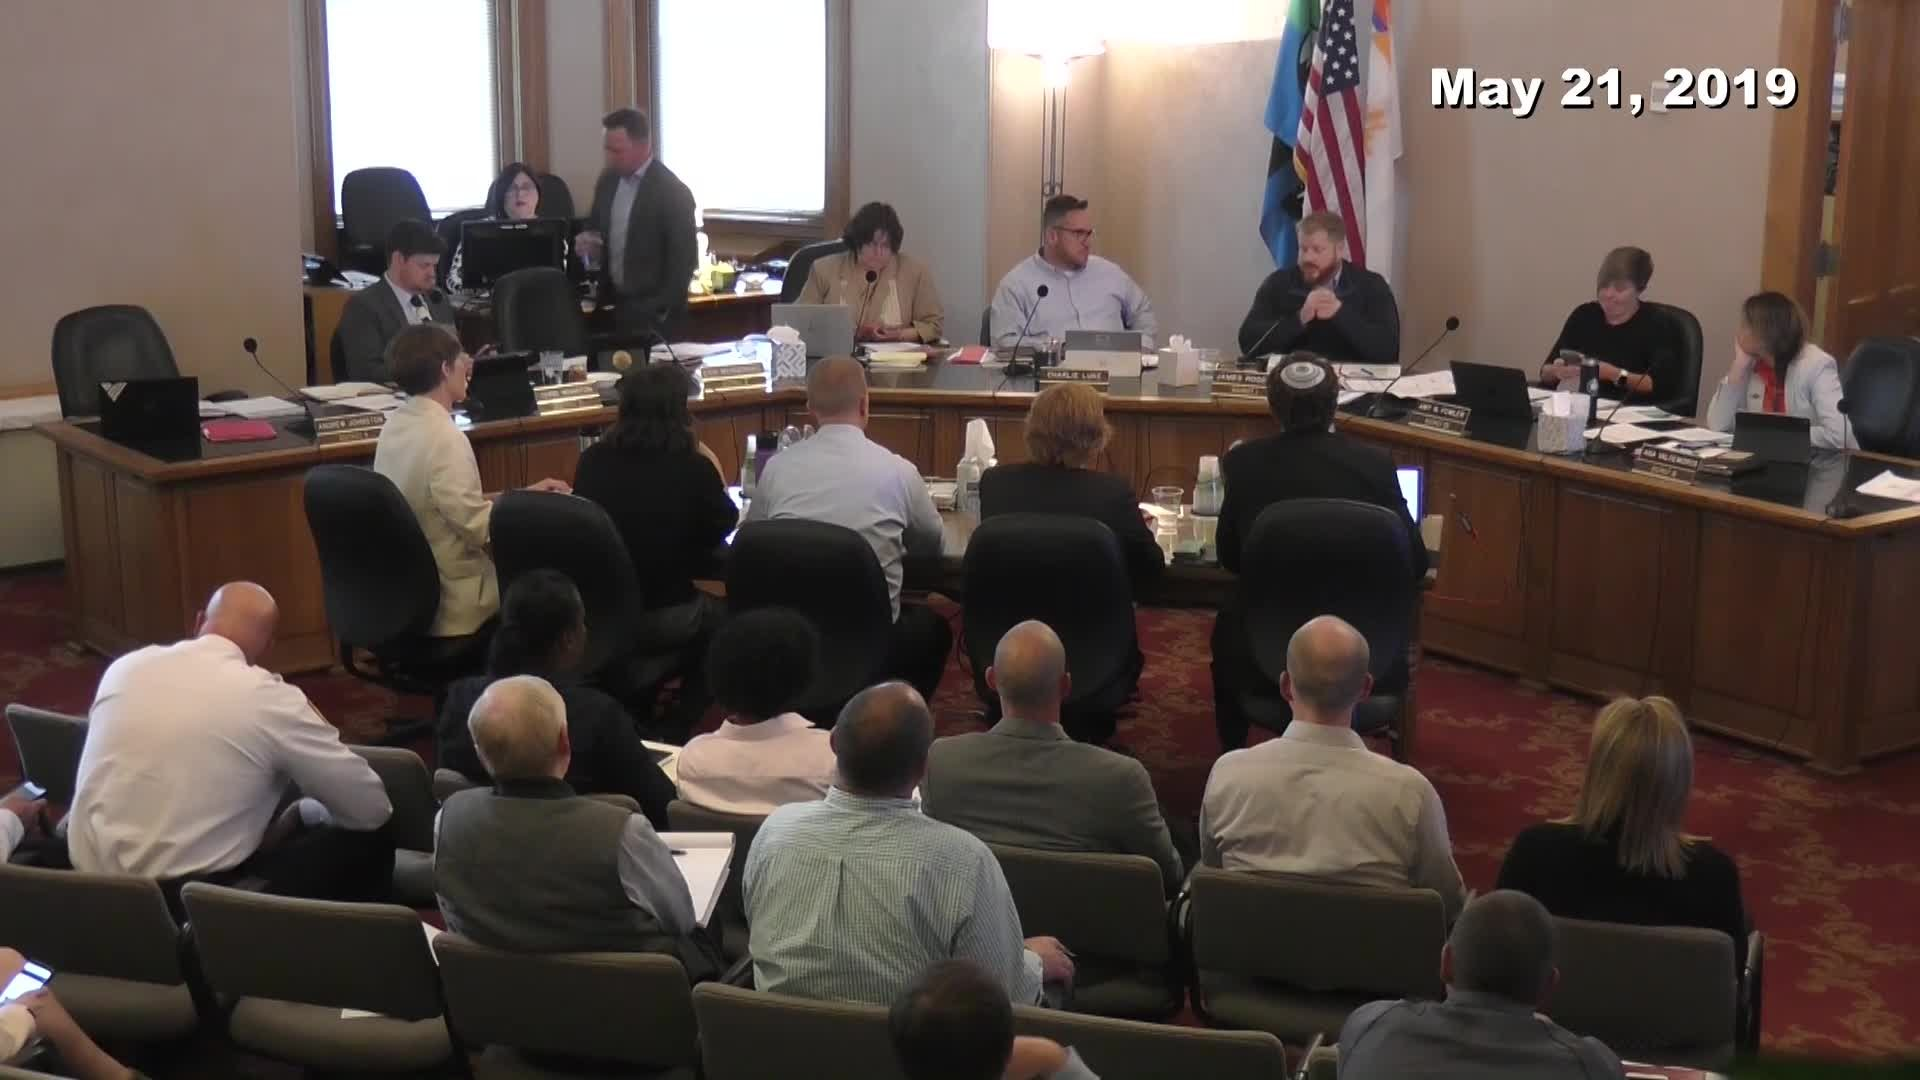 City Council Work Session - 05/21/2019